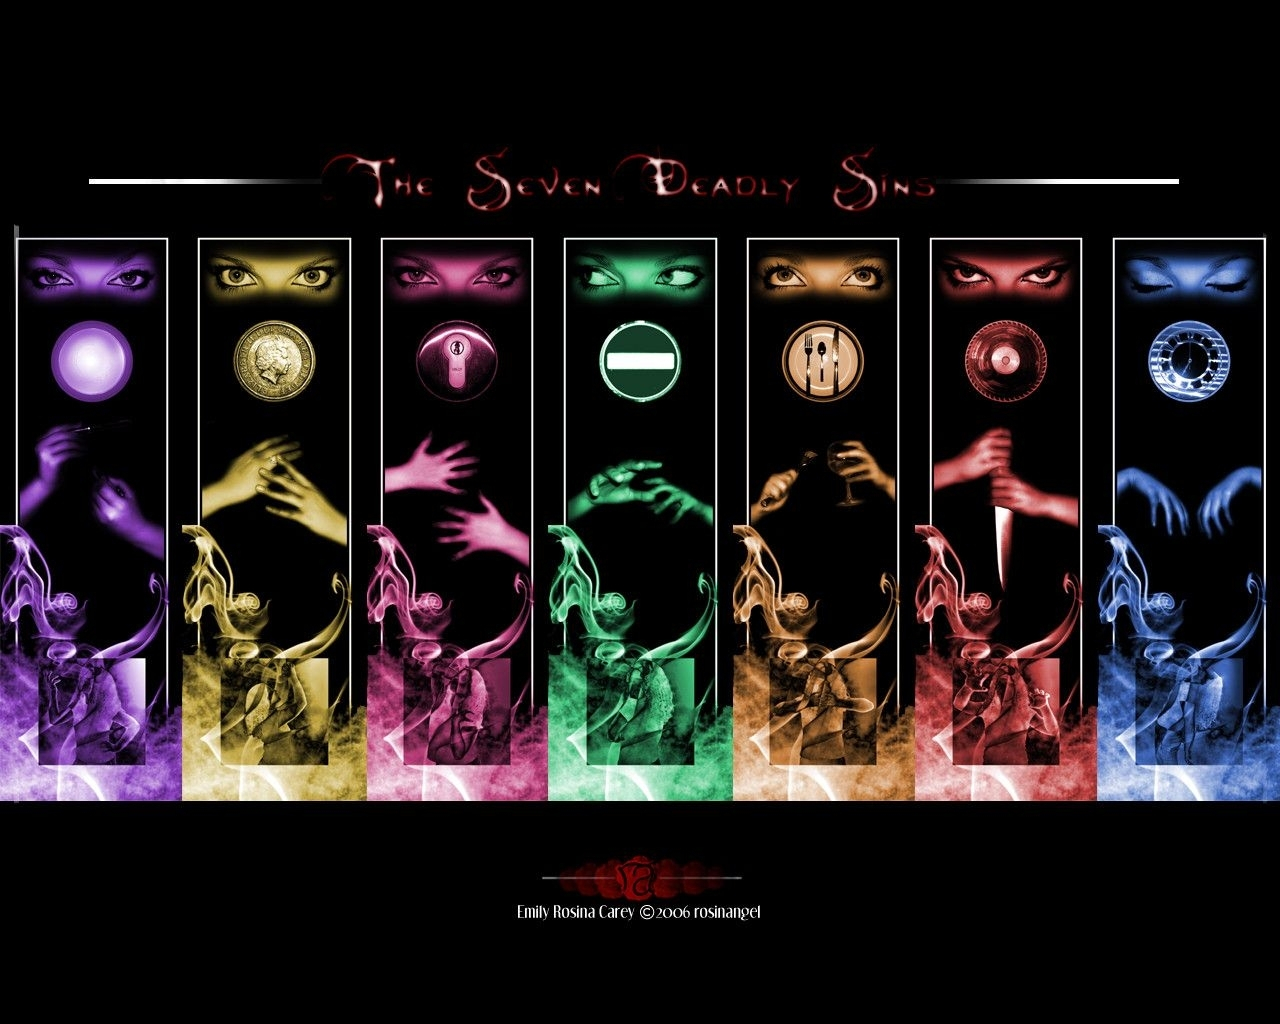 10 Best Seven Deadly Sins Wallpapers FULL HD 1080p For PC